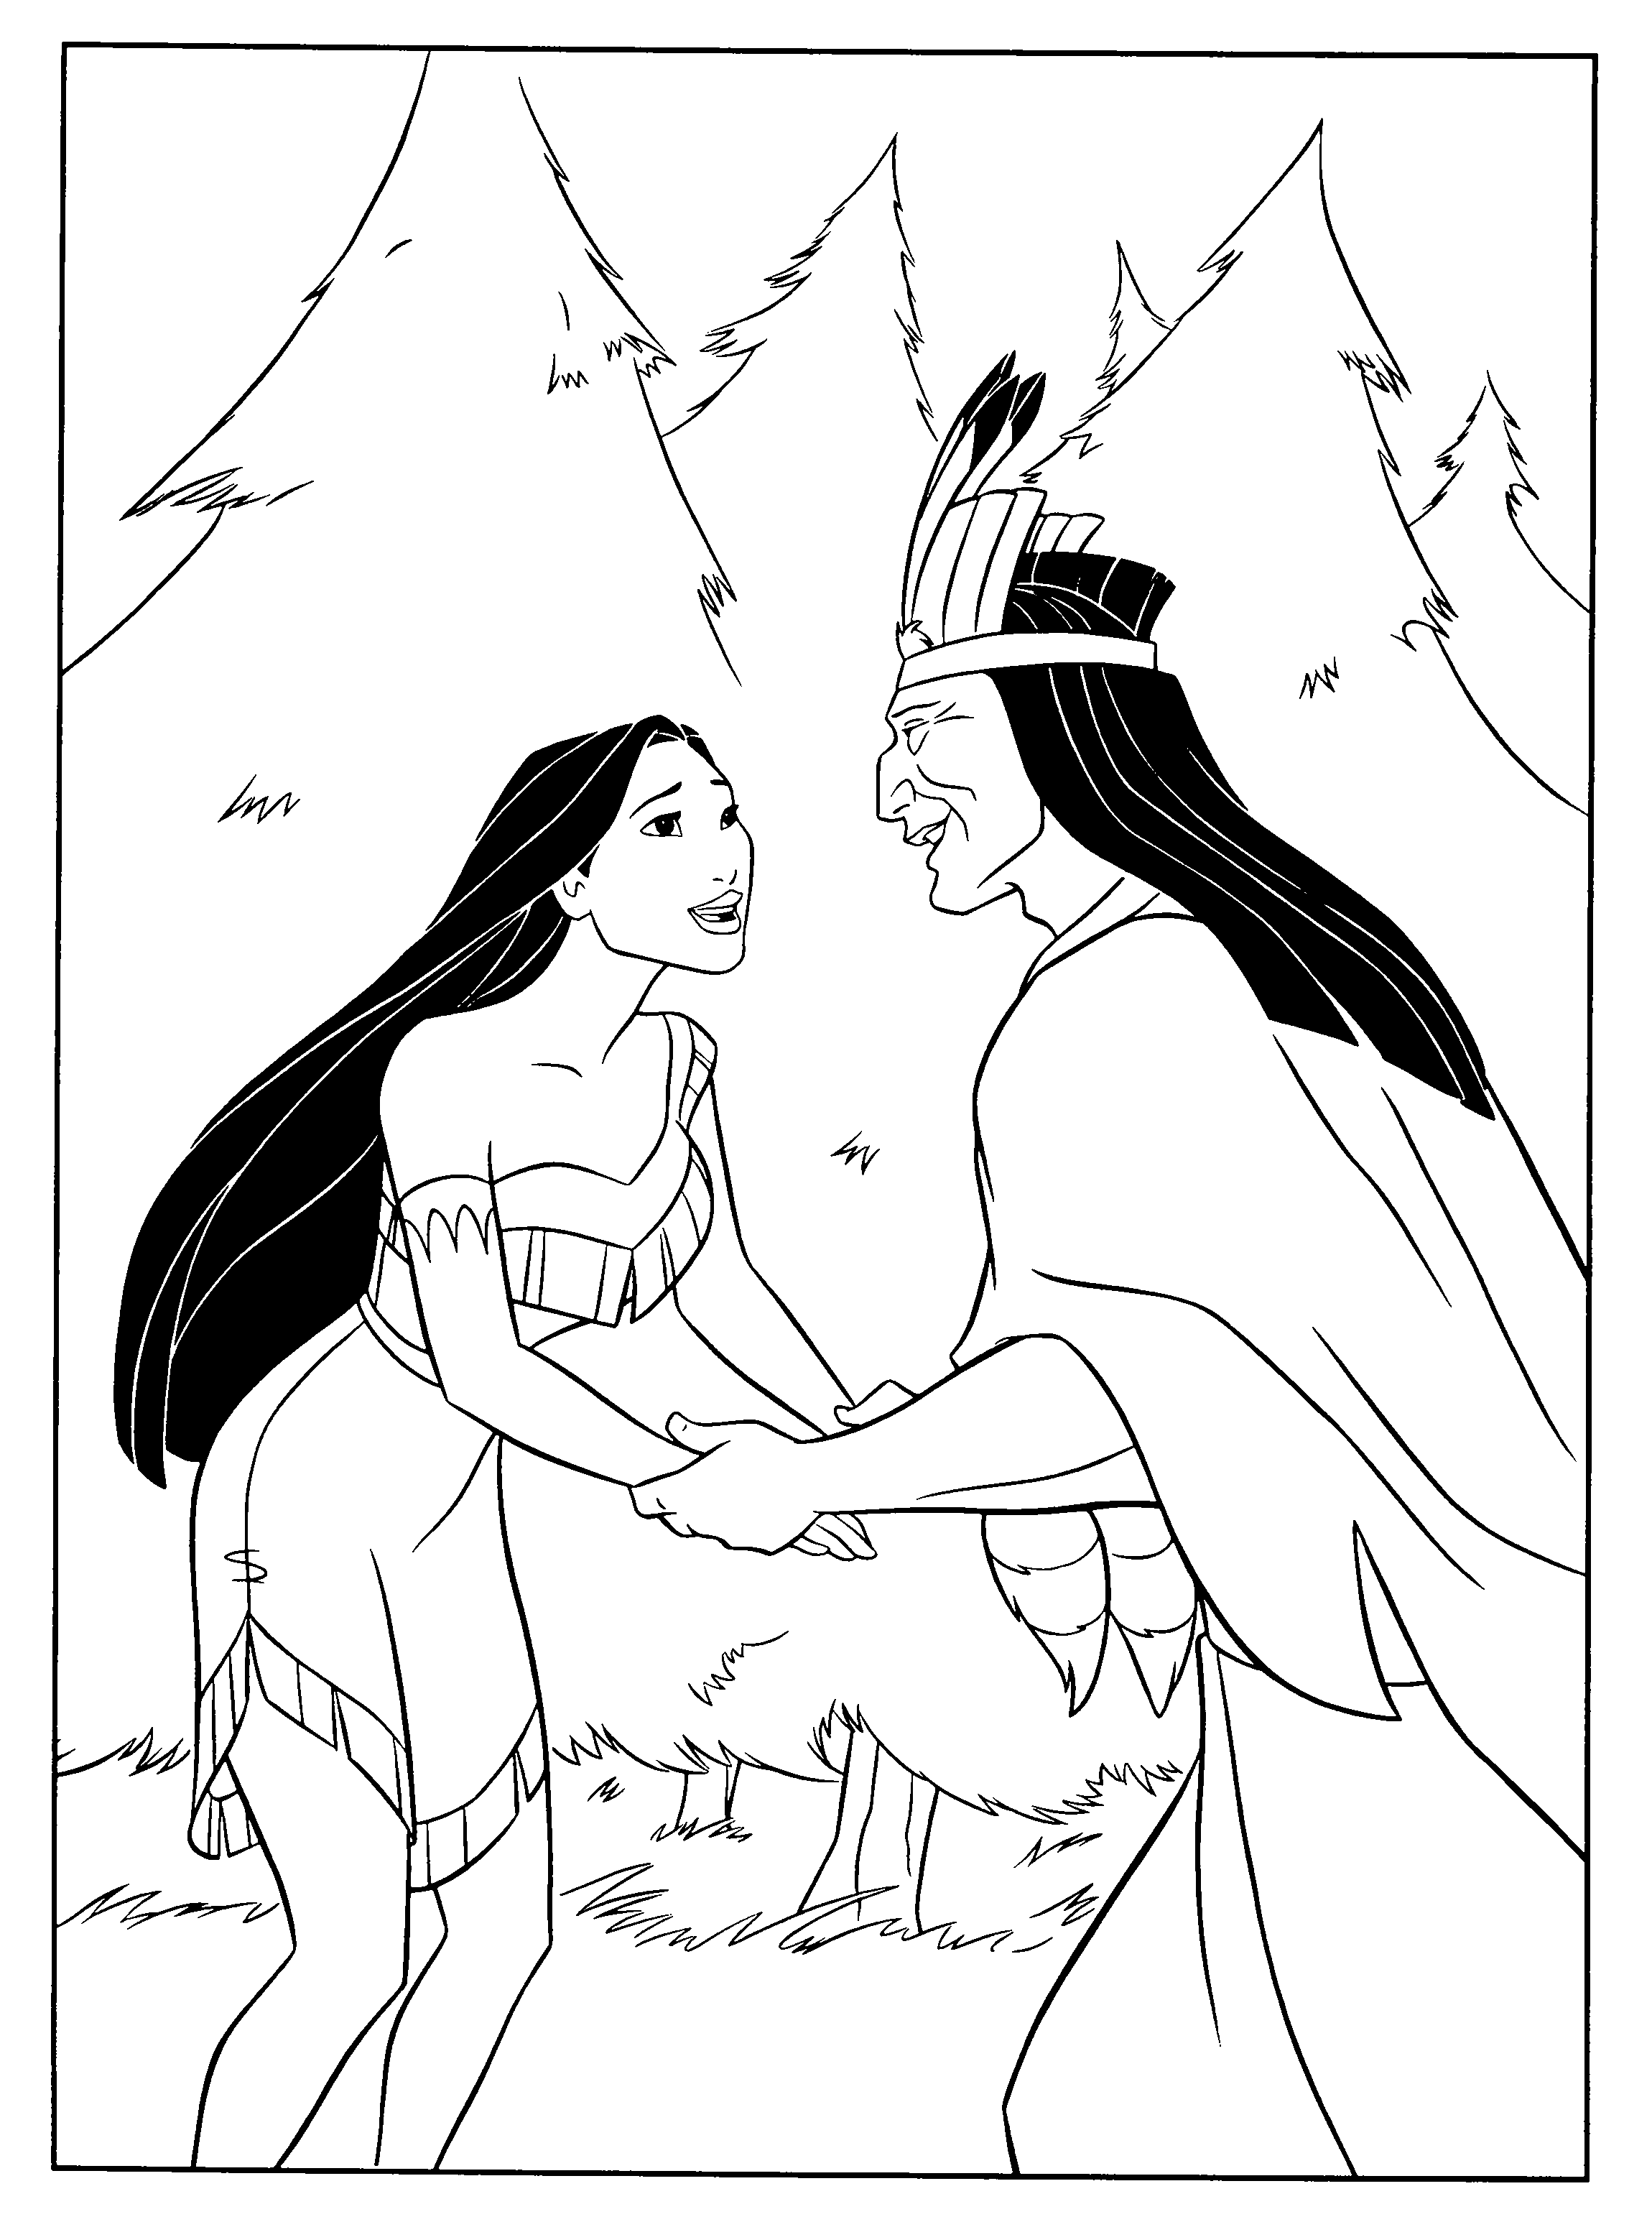 pocahontas coloring pages - Google-søgning | Coloring Pages For Kids ...